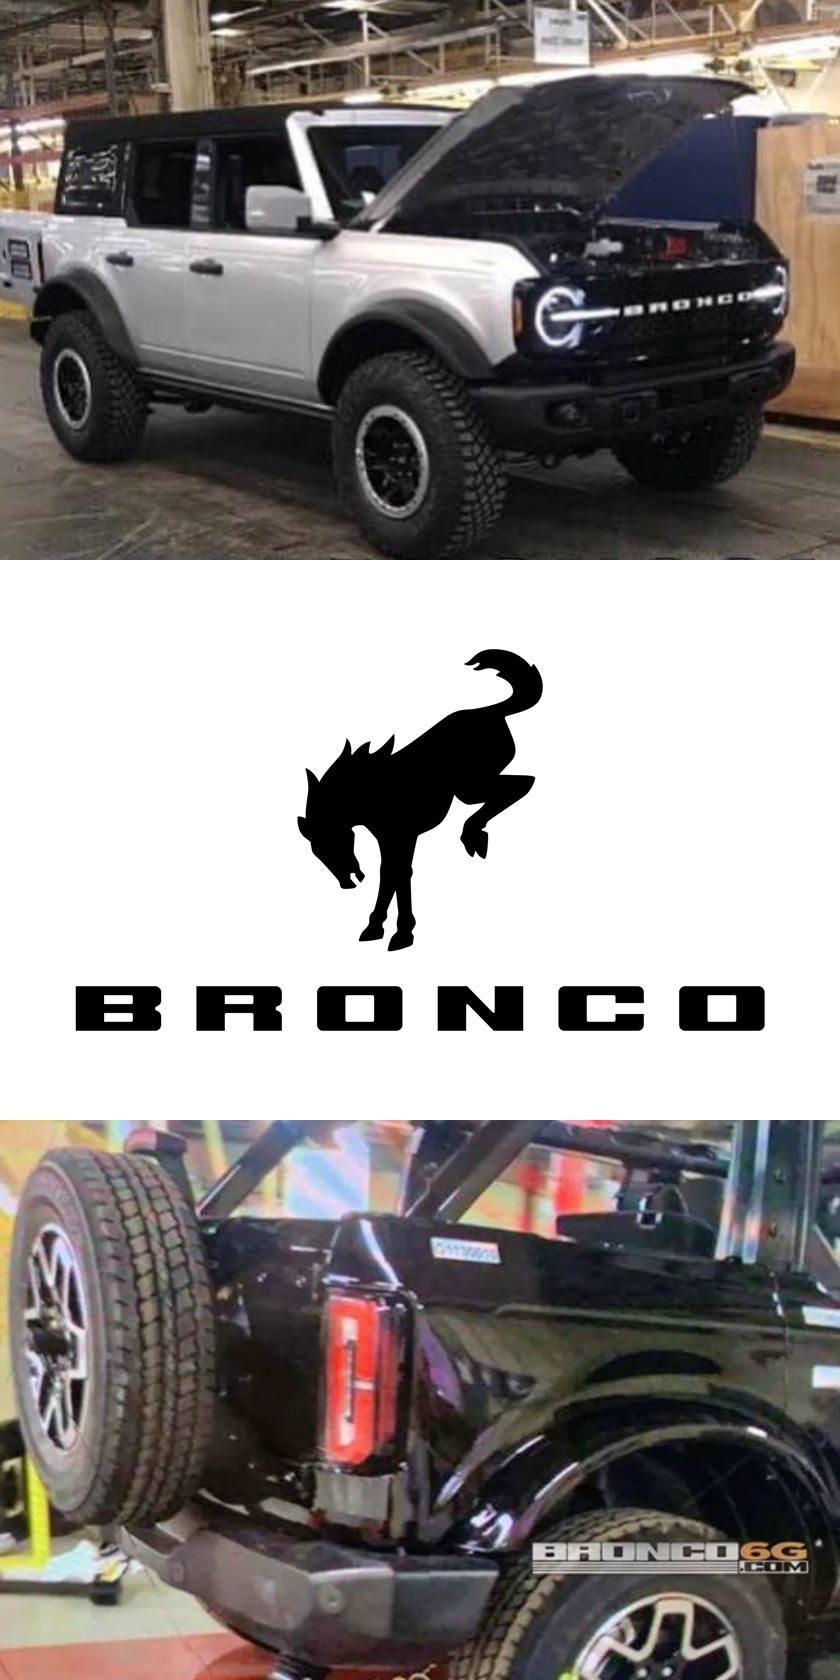 This Is It Best Leak Yet Of 2021 Ford Bronco In 2020 Ford Bronco Bronco Sports Bronco